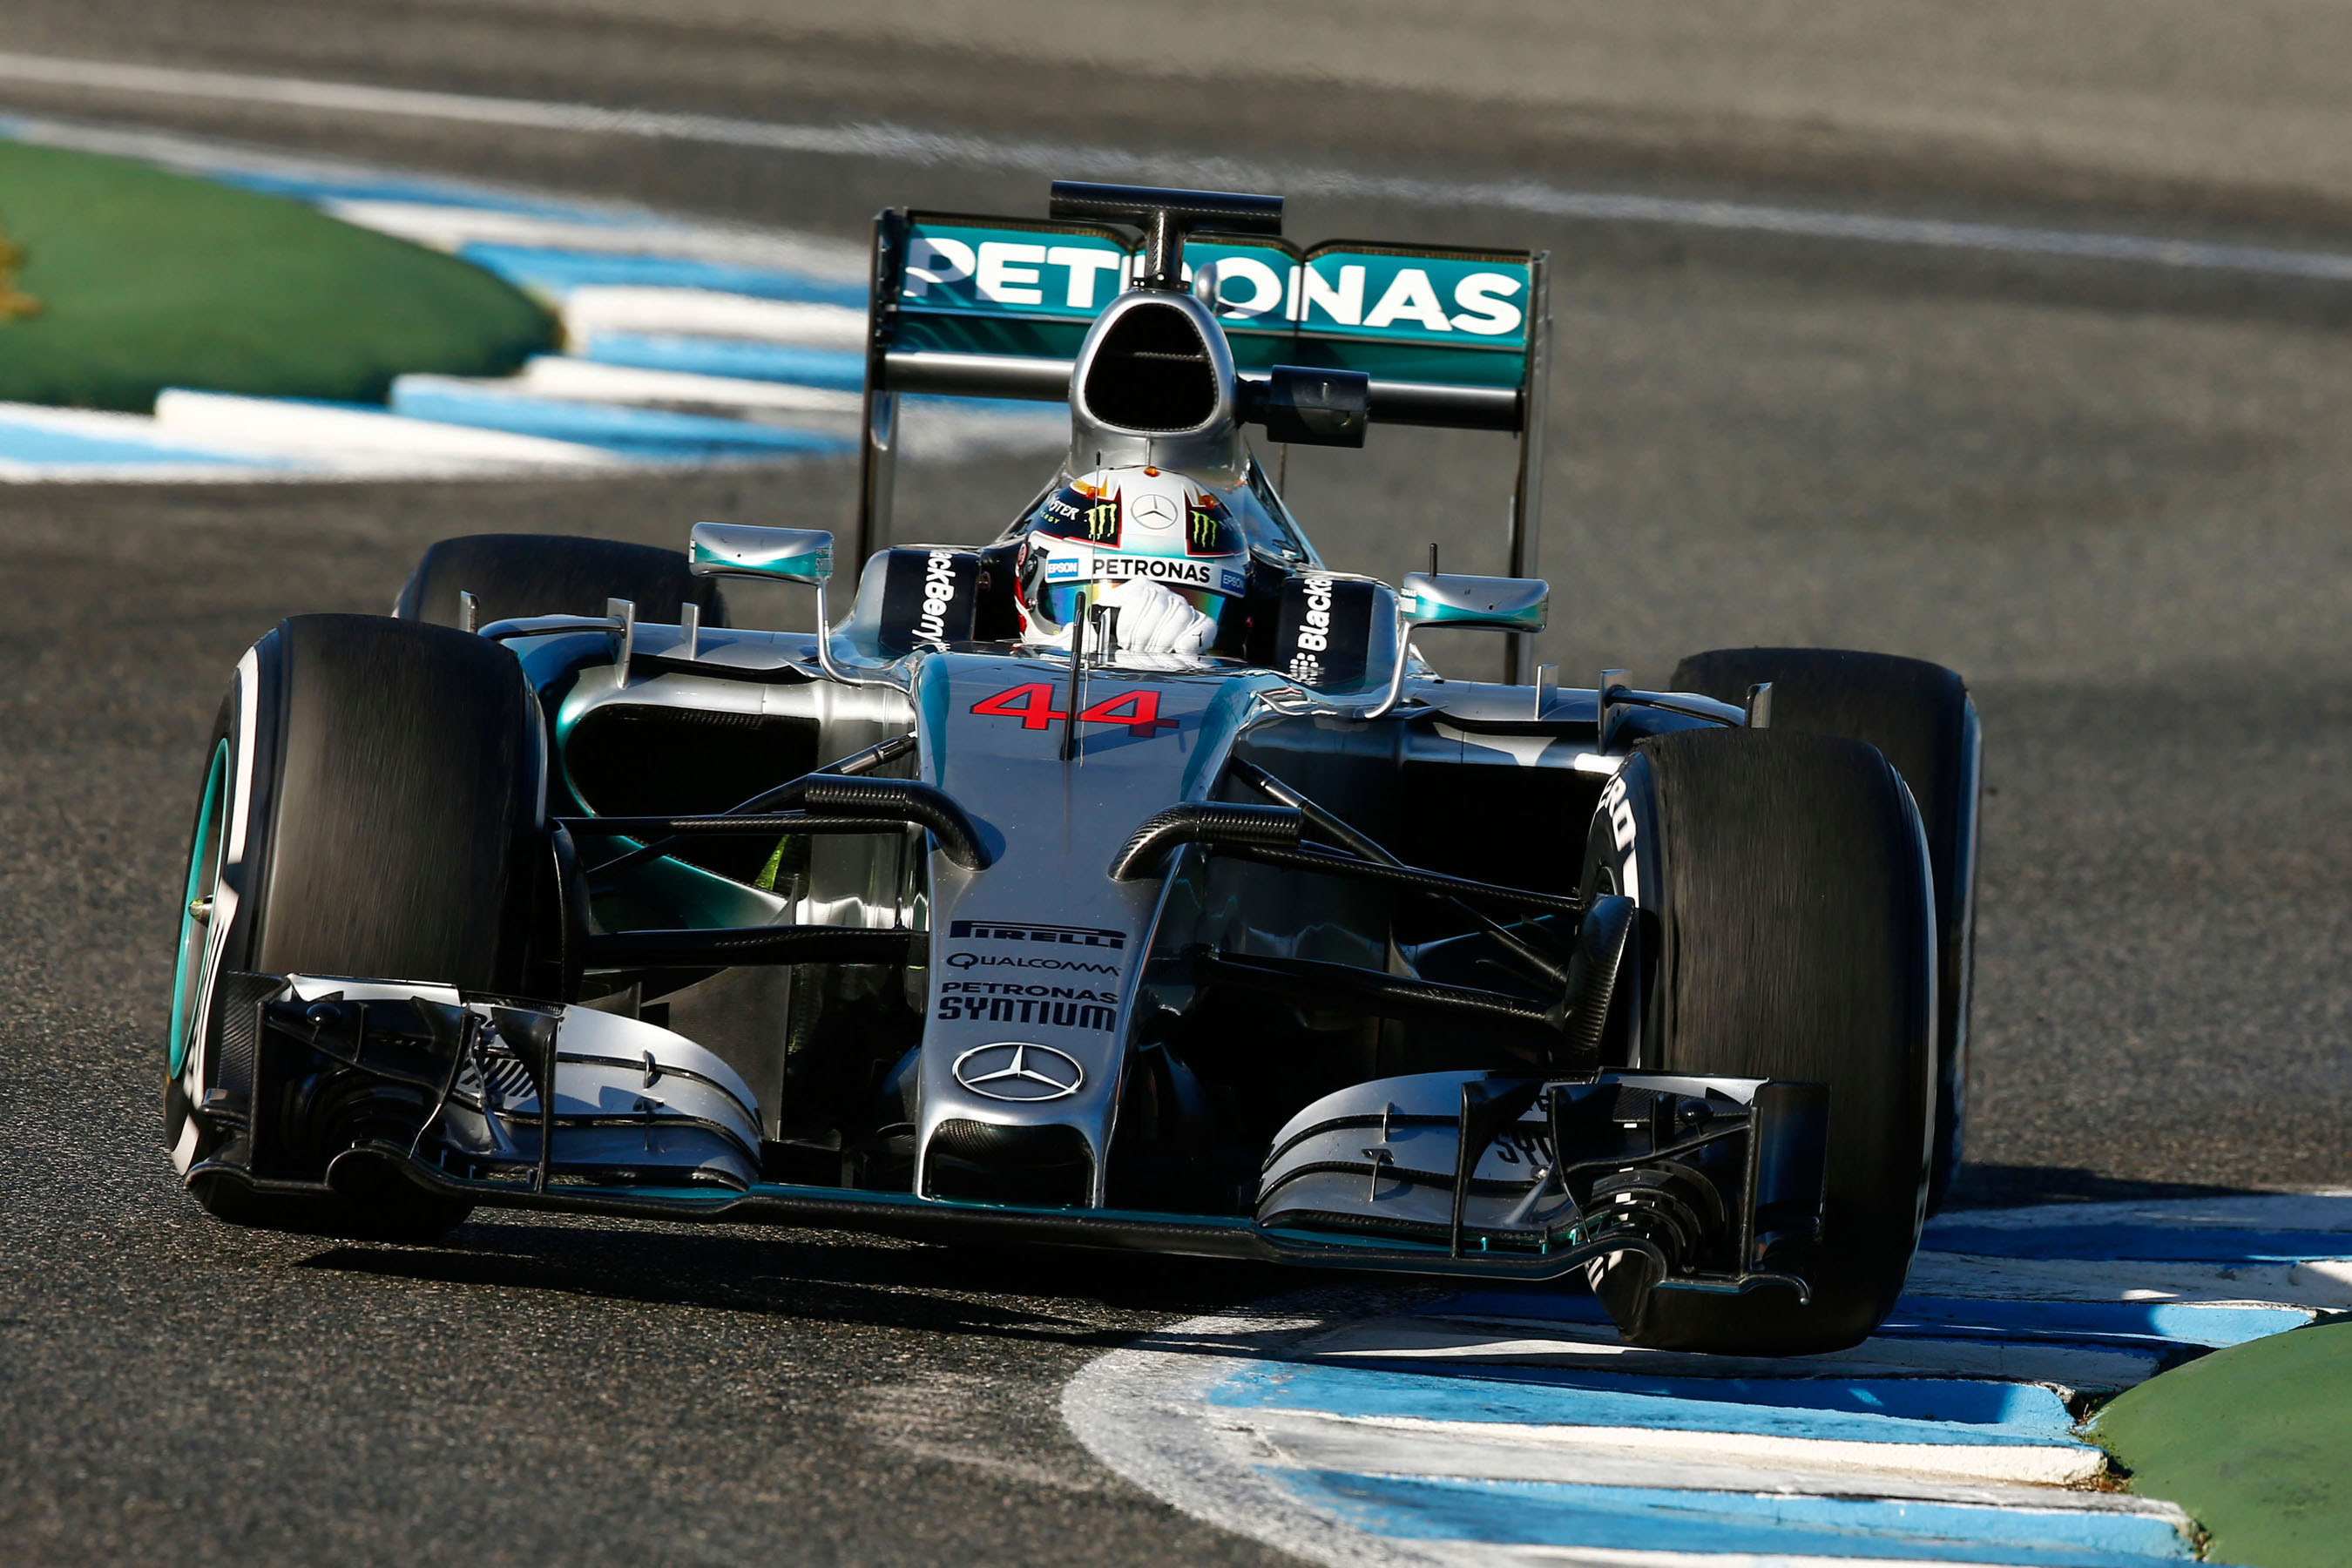 Qualcomm Joins the MERCEDES AMG PETRONAS Formula One Team as Official Technology Partner